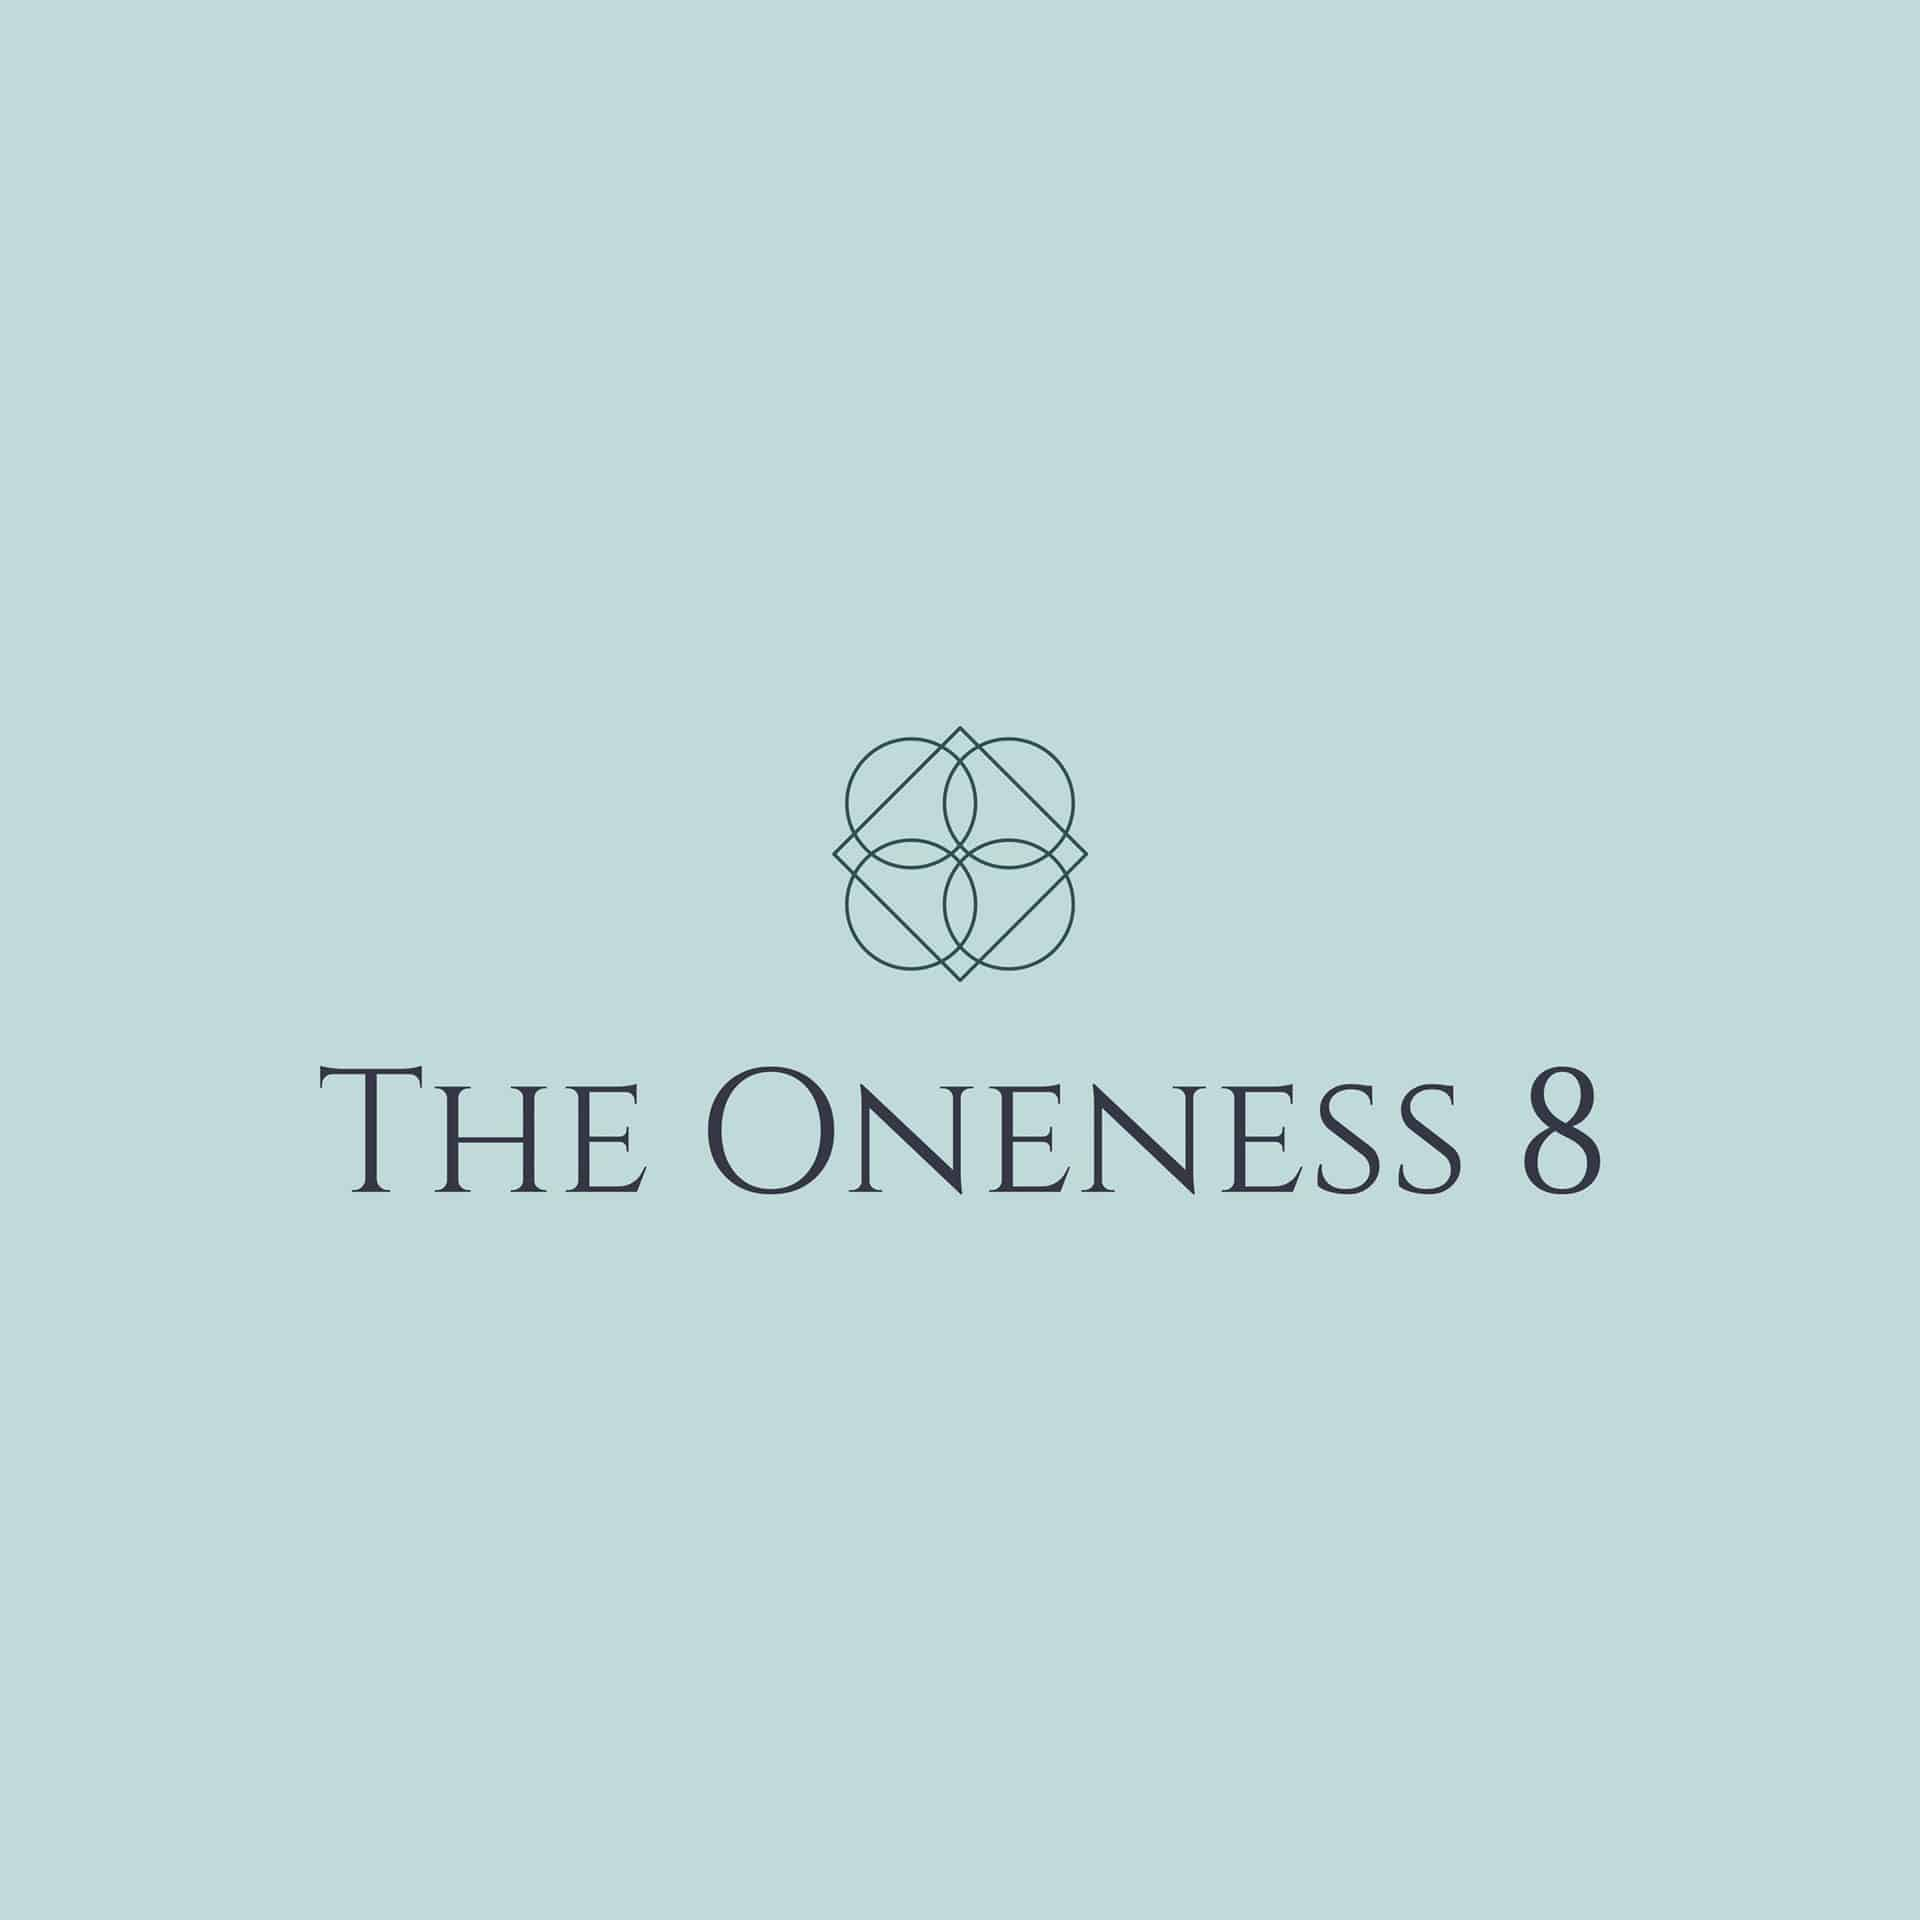 The Oneness 8